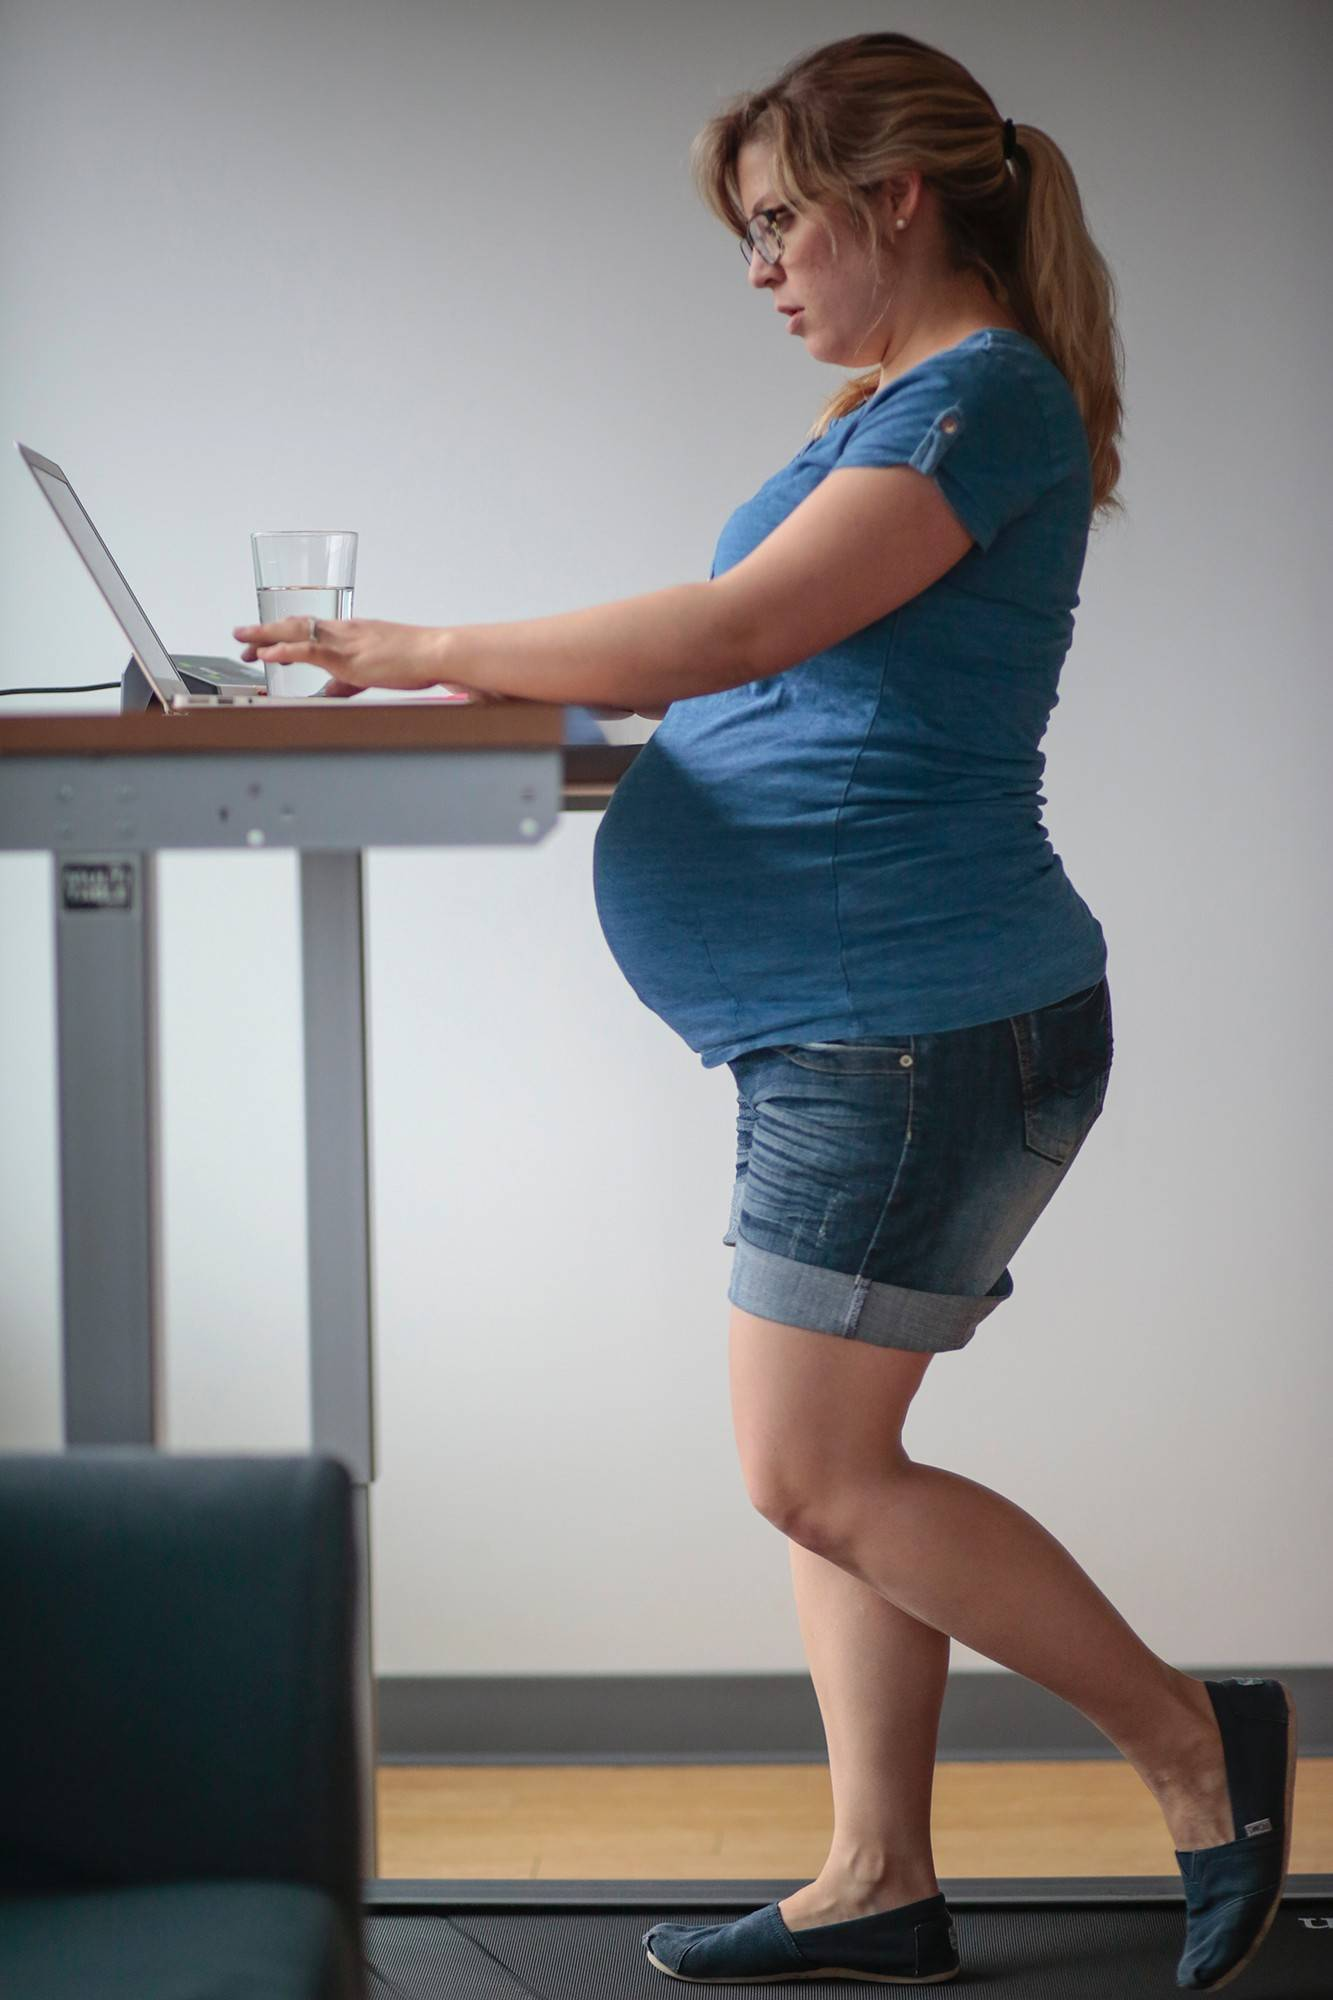 In addition to standing desks, Opower offers employees like Julie O'Brien, who's in her 39th week of pregnancy, two treadmill workstations.